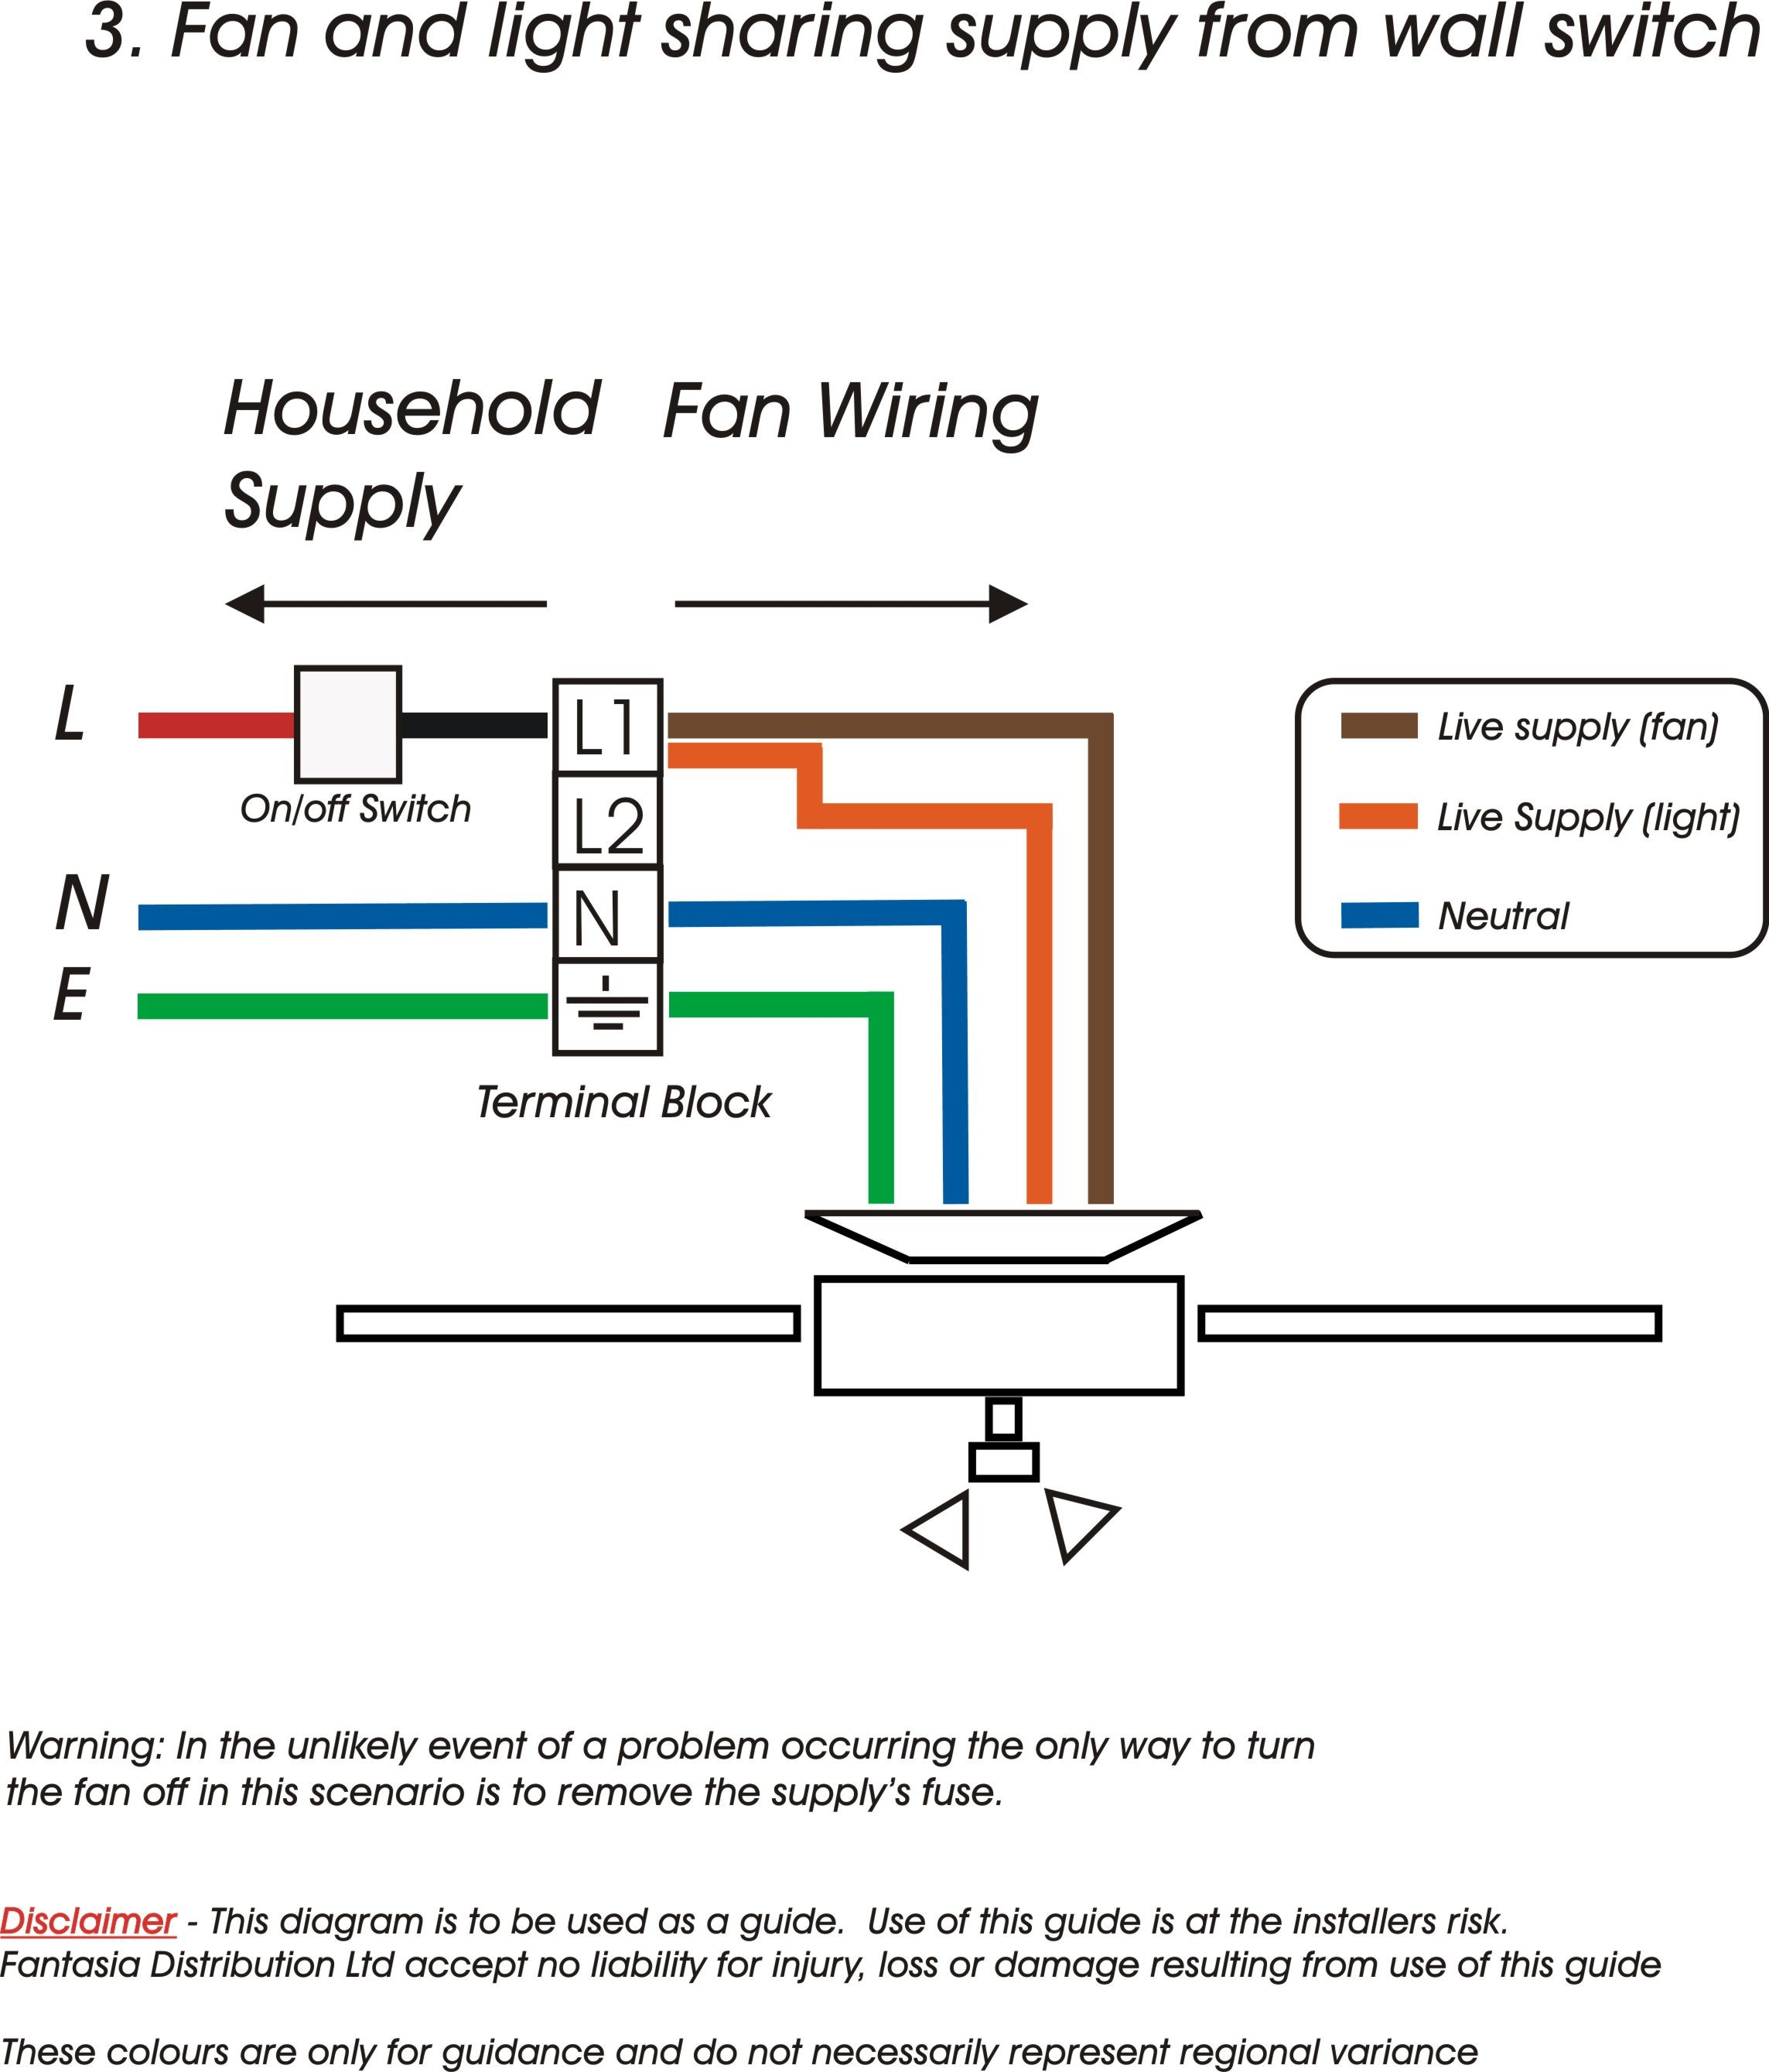 Fan Wiring Diagram Switch How To Wire Speed Ceiling In Wires Hunter Control Exhaust Light Westinghouse